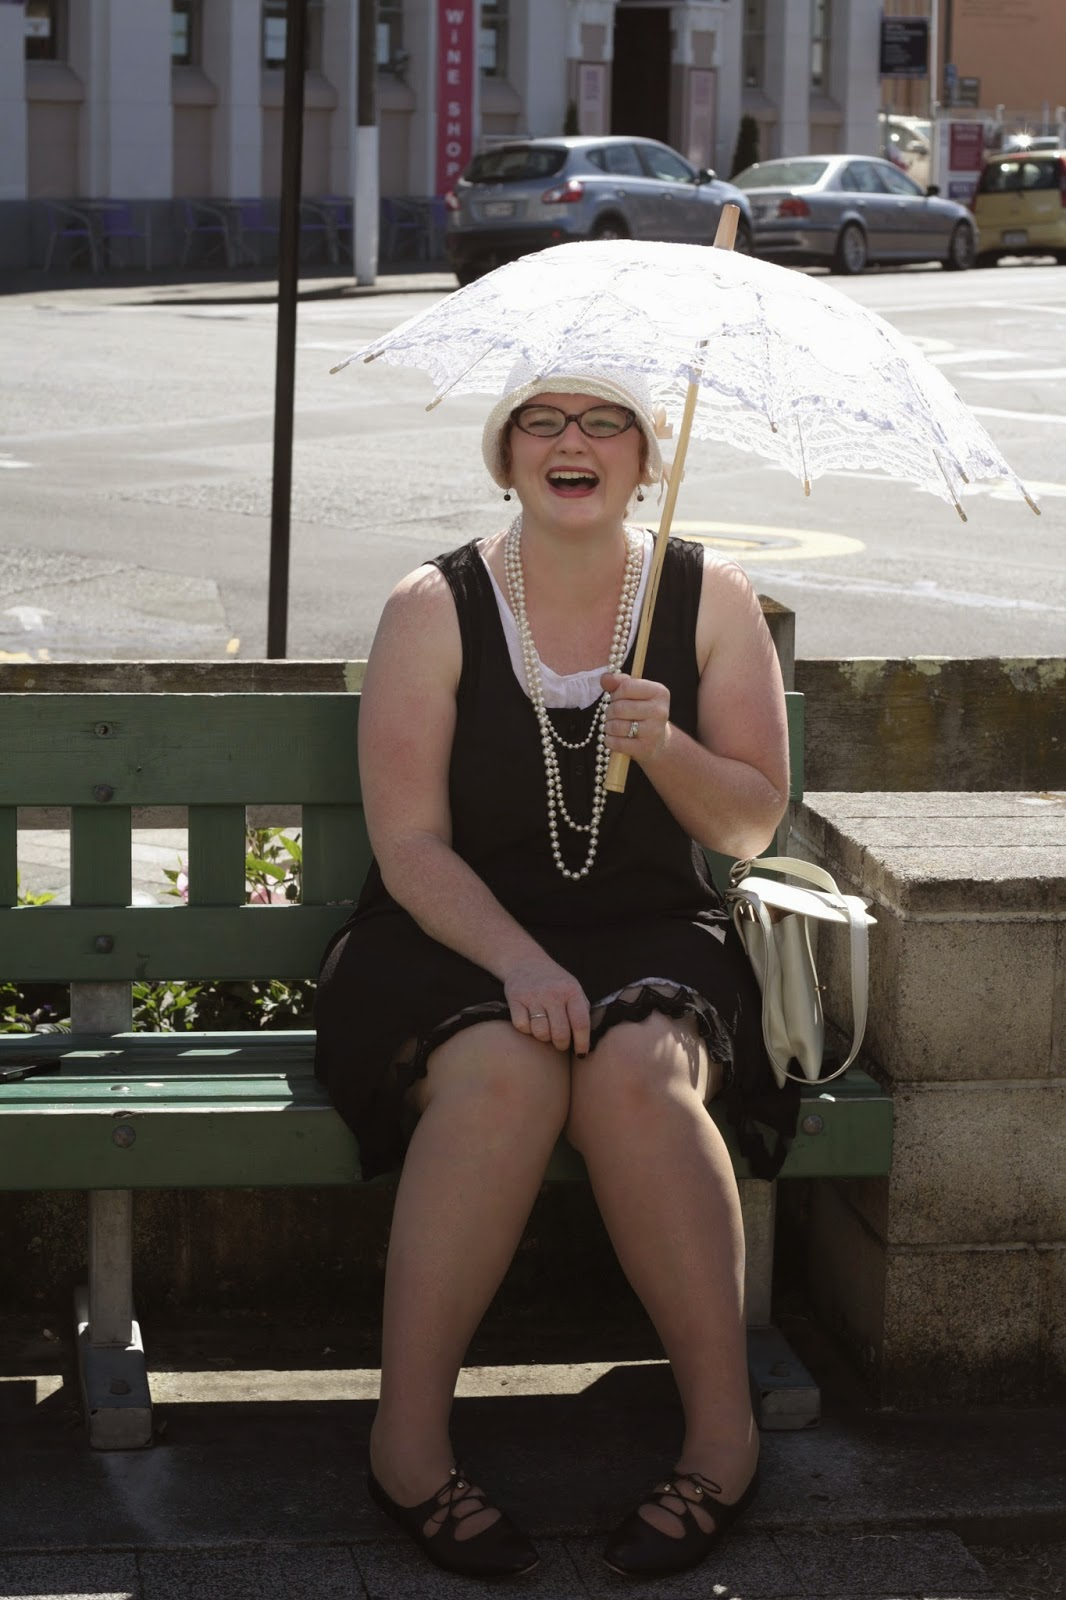 Jenn has an art deco dress, lots of pearls, a smile and a parasol.